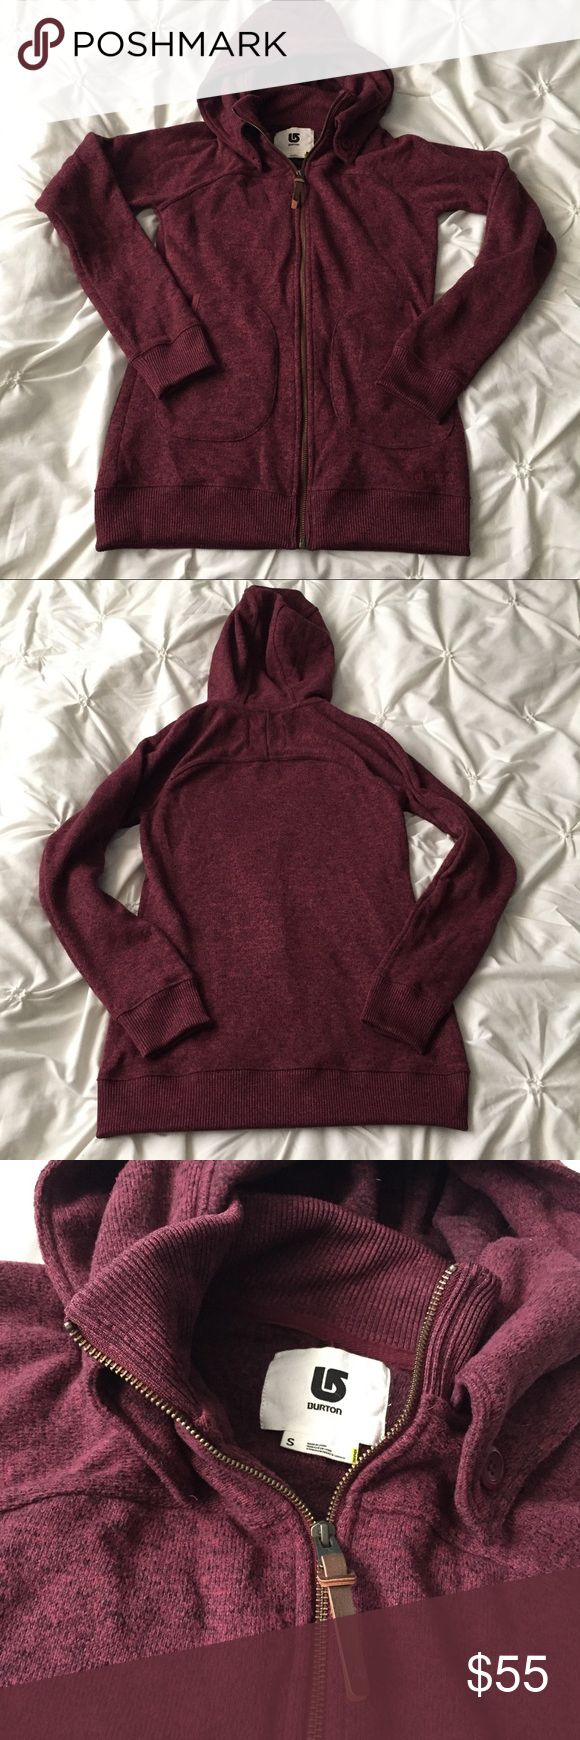 Burton Snowboard Maroon Full Zip Hoodie Burton Snowboard Maroon Full Zip Hoodie size Small, front pockets, neck button detail ---- 🚭 All items are from a non-smoking home. 👆🏻Item is as described, feel free to ask questions. 📦 I am a fast shipper with excellent ratings. 👗I love bundles & bundle discounts. Feel free to make an offer! 😍 Like this item? Check out the rest of my closet! 💖 Thanks for looking! Burton Tops Sweatshirts & Hoodies